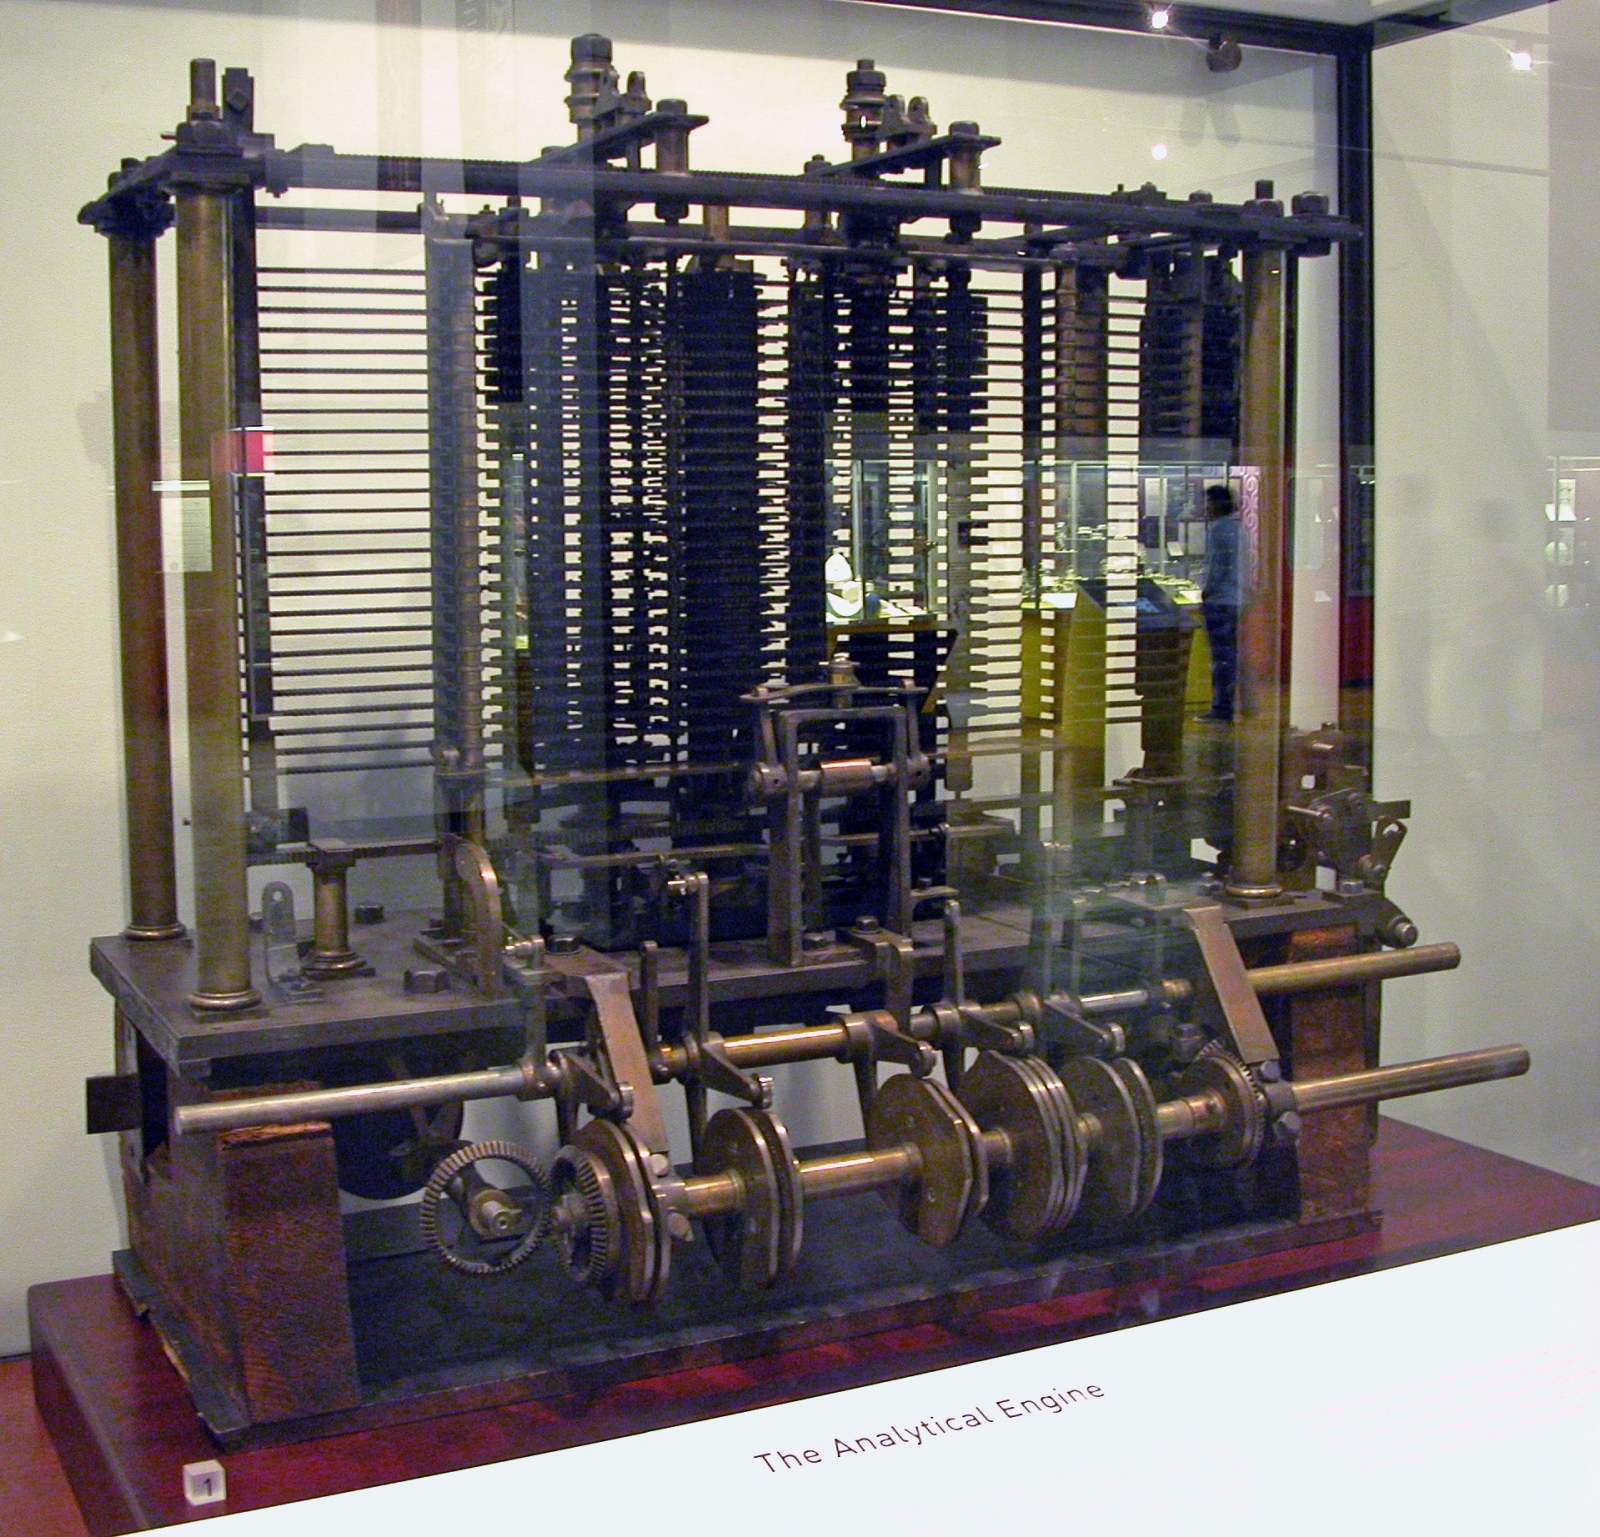 Analytical Engine by Charles Babbage